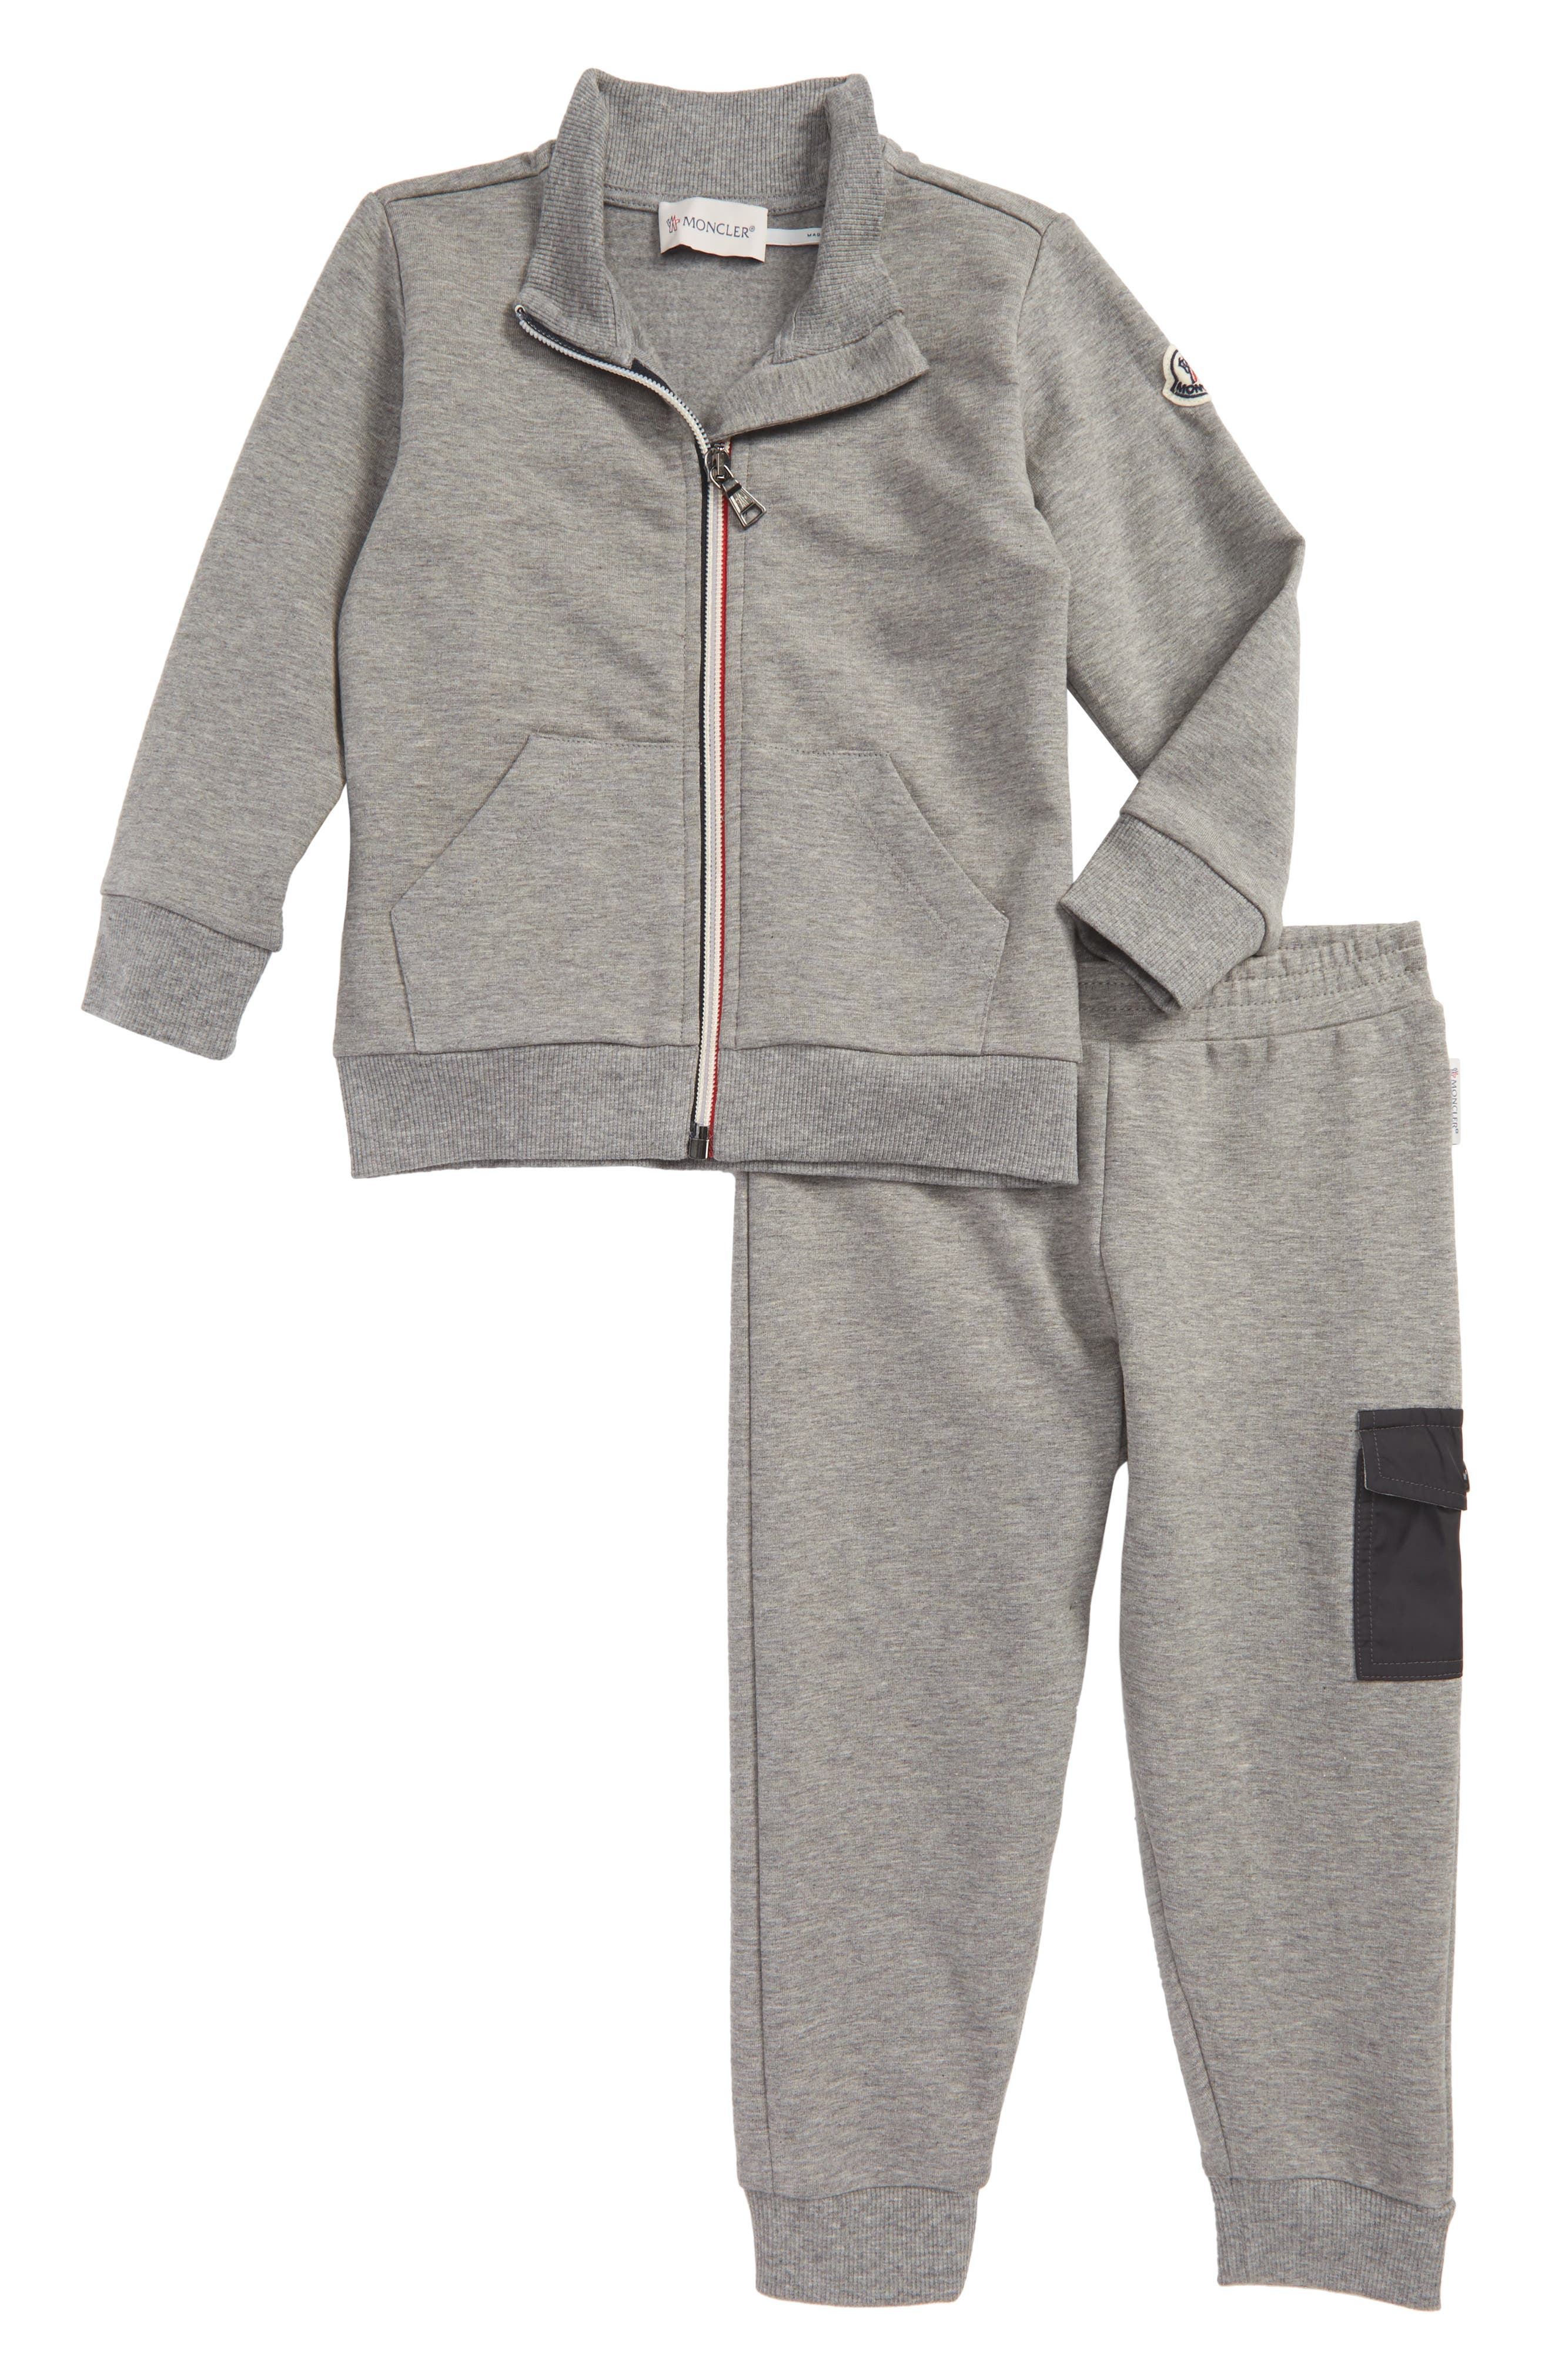 Moncler Zip-Up Jacket & Sweatpants Set (Baby Boys & Toddler Boys)